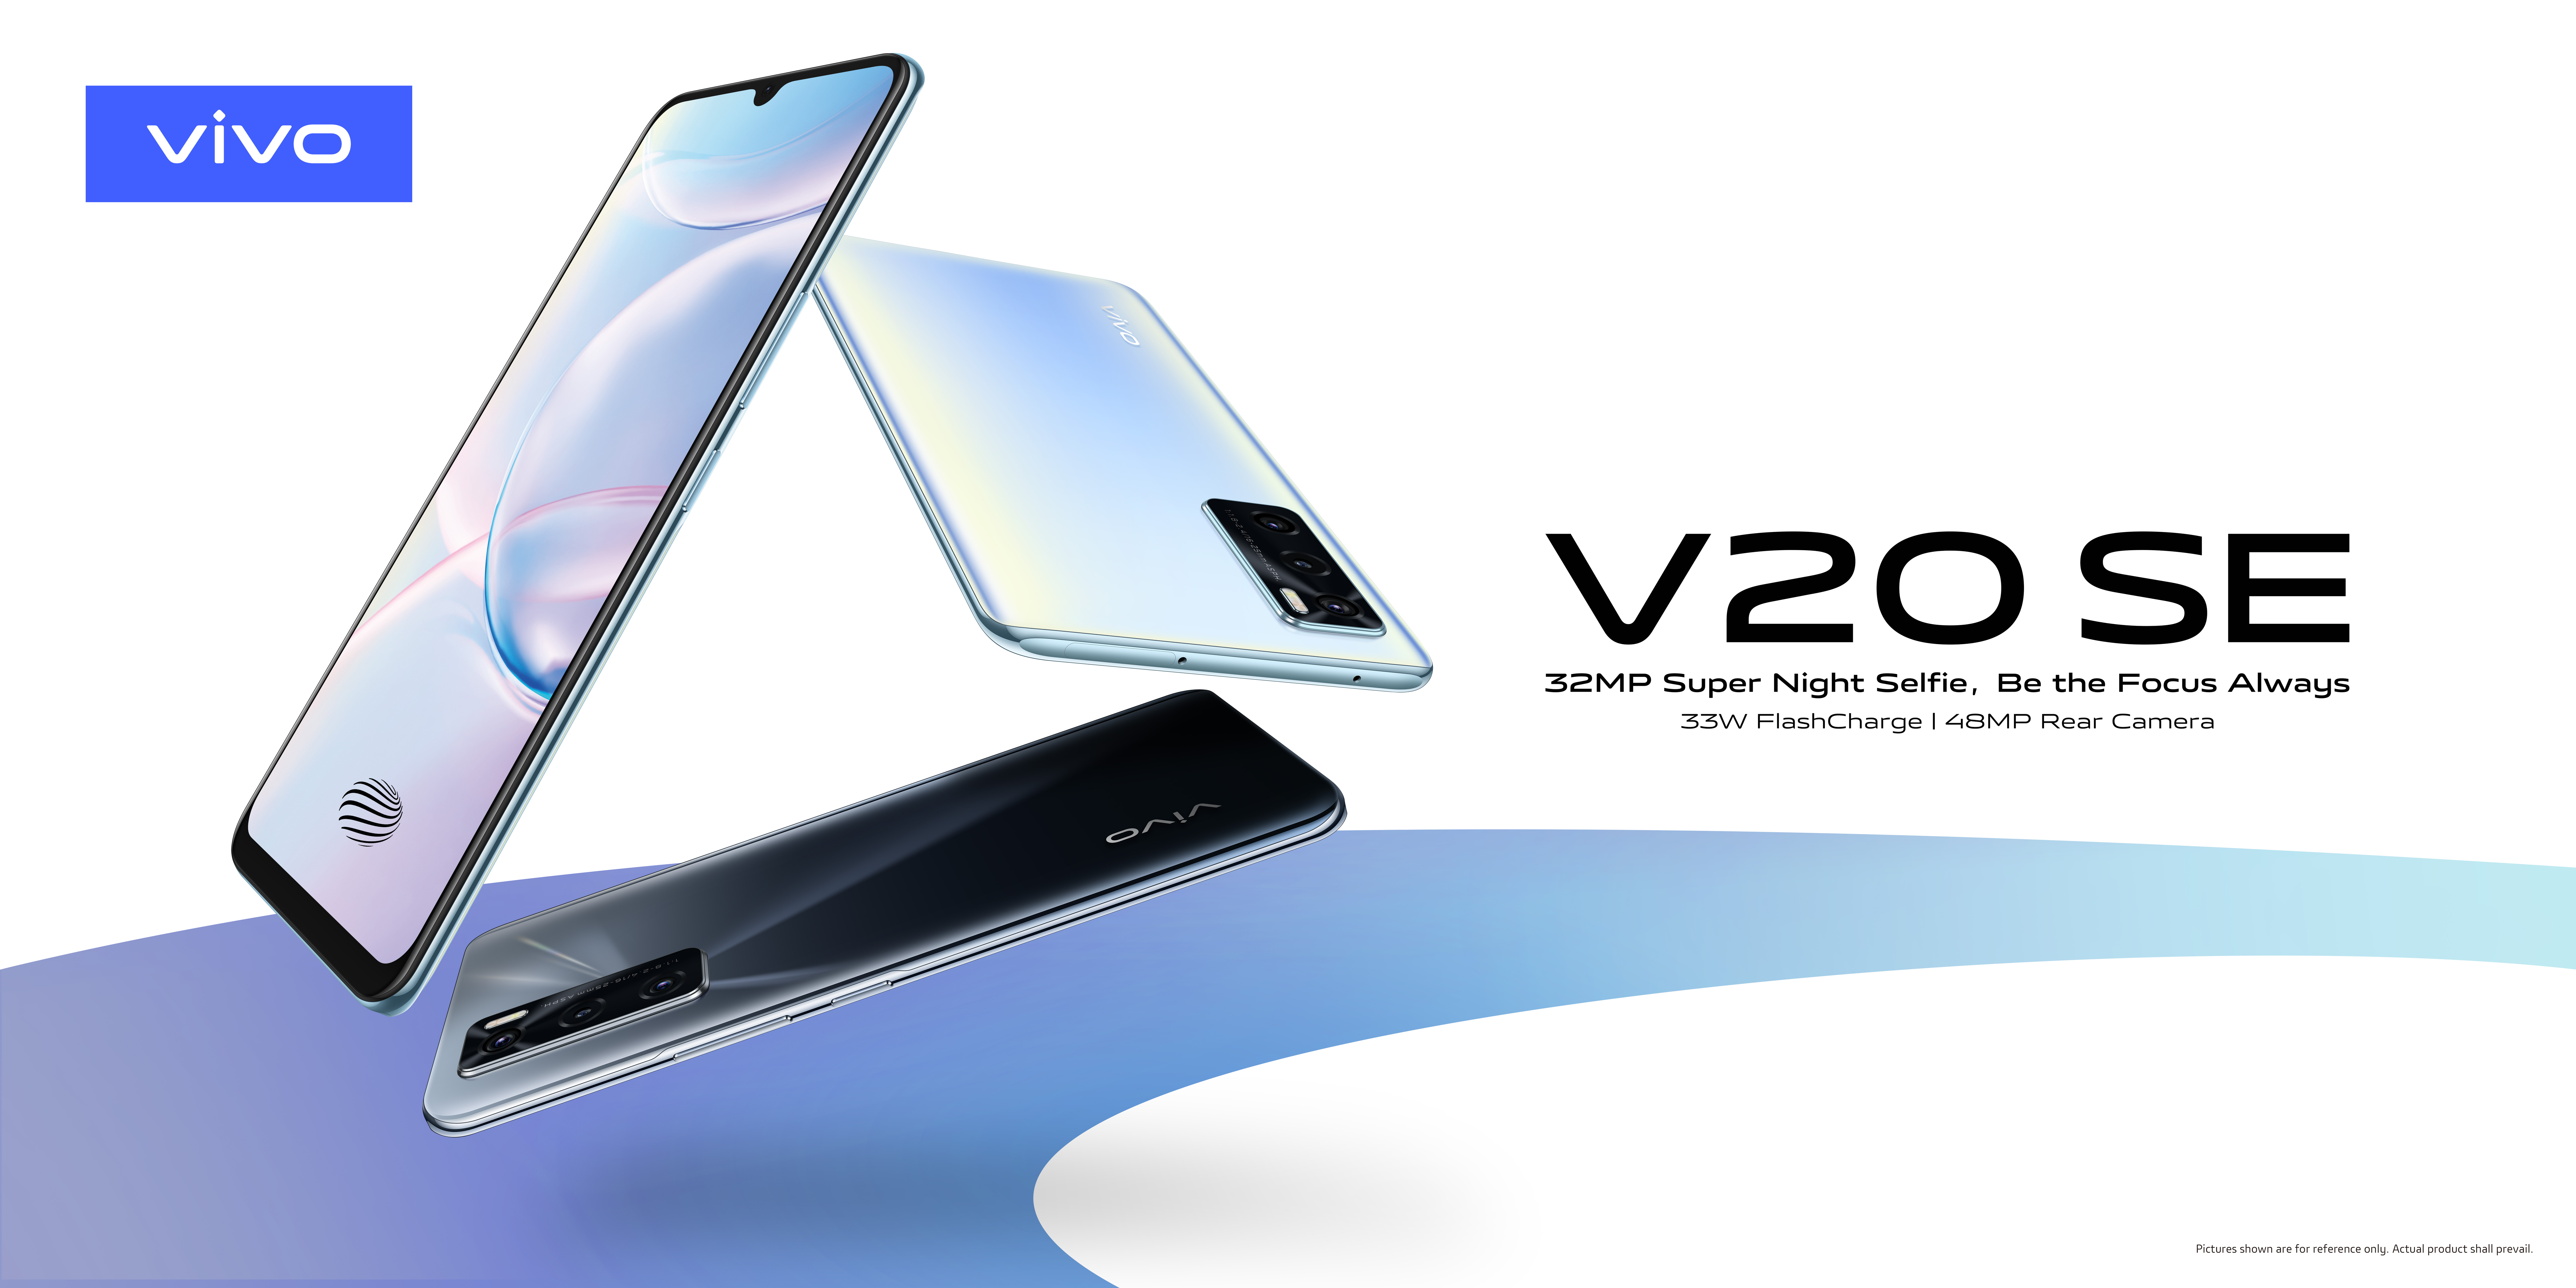 Photo of Sleek design with Extraordinary photography! Is the latest buzz word for vivo's premium flagship V20 series?